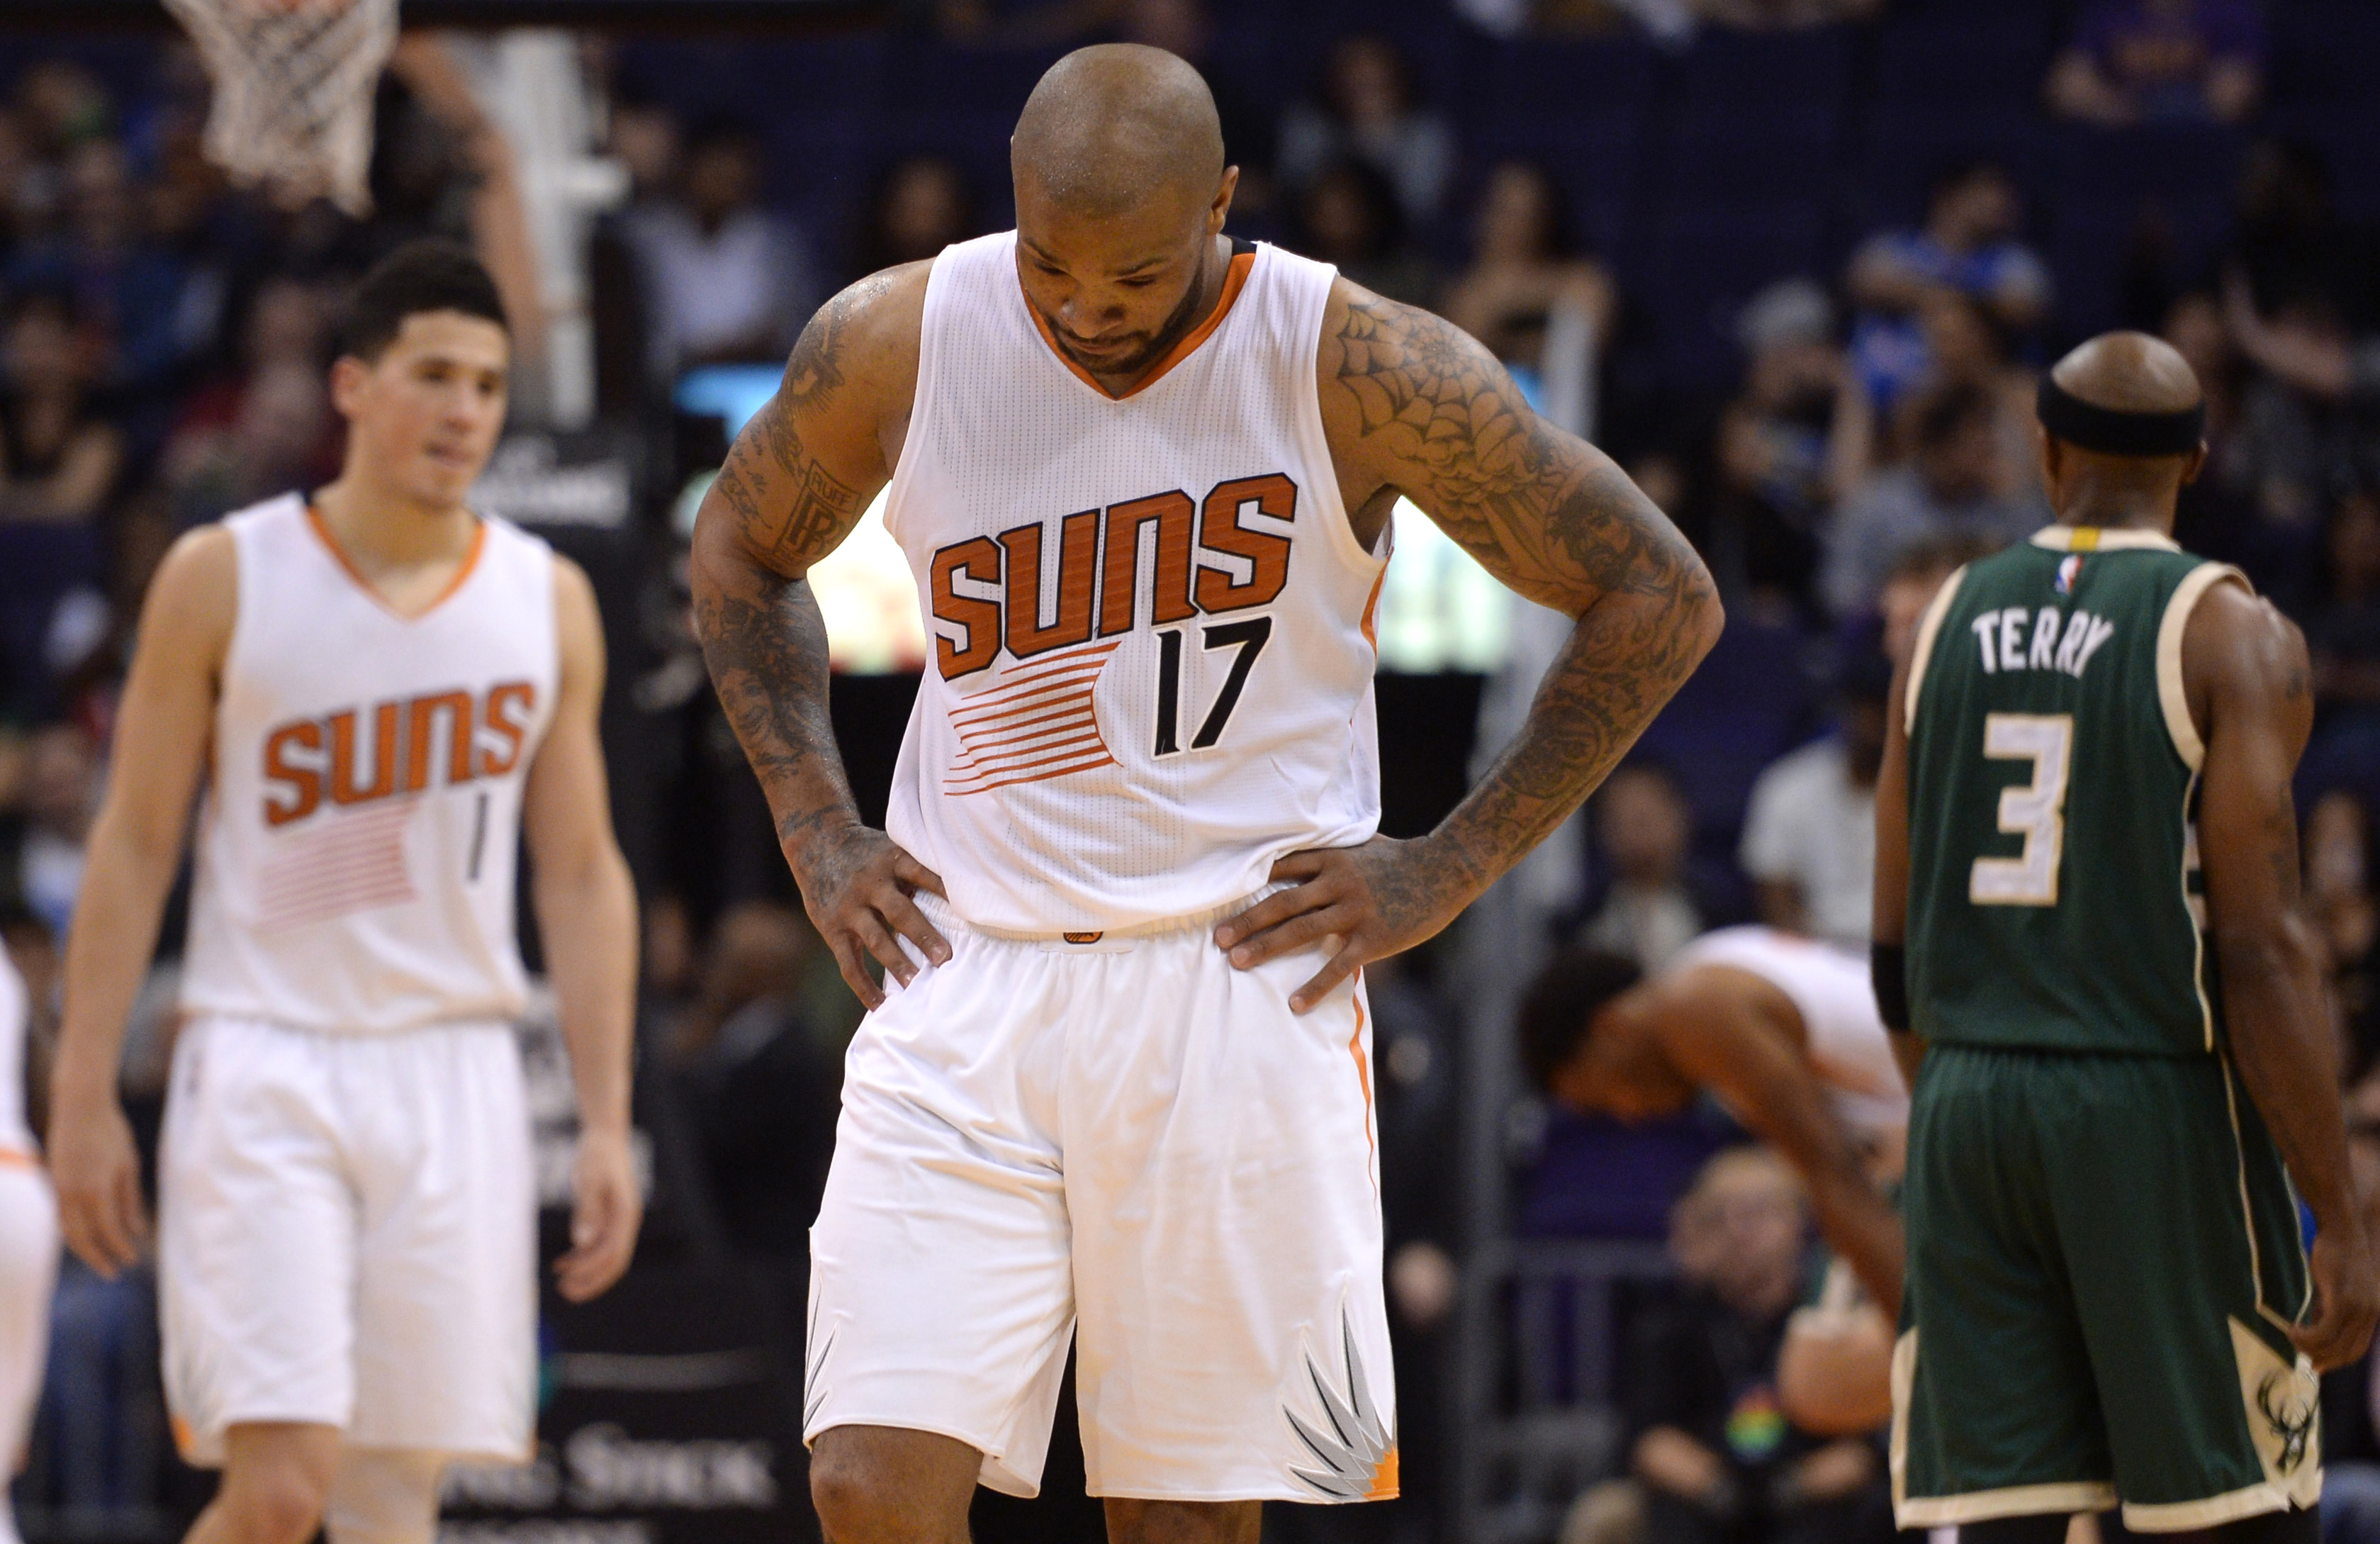 9859750-nba-milwaukee-bucks-at-phoenix-suns